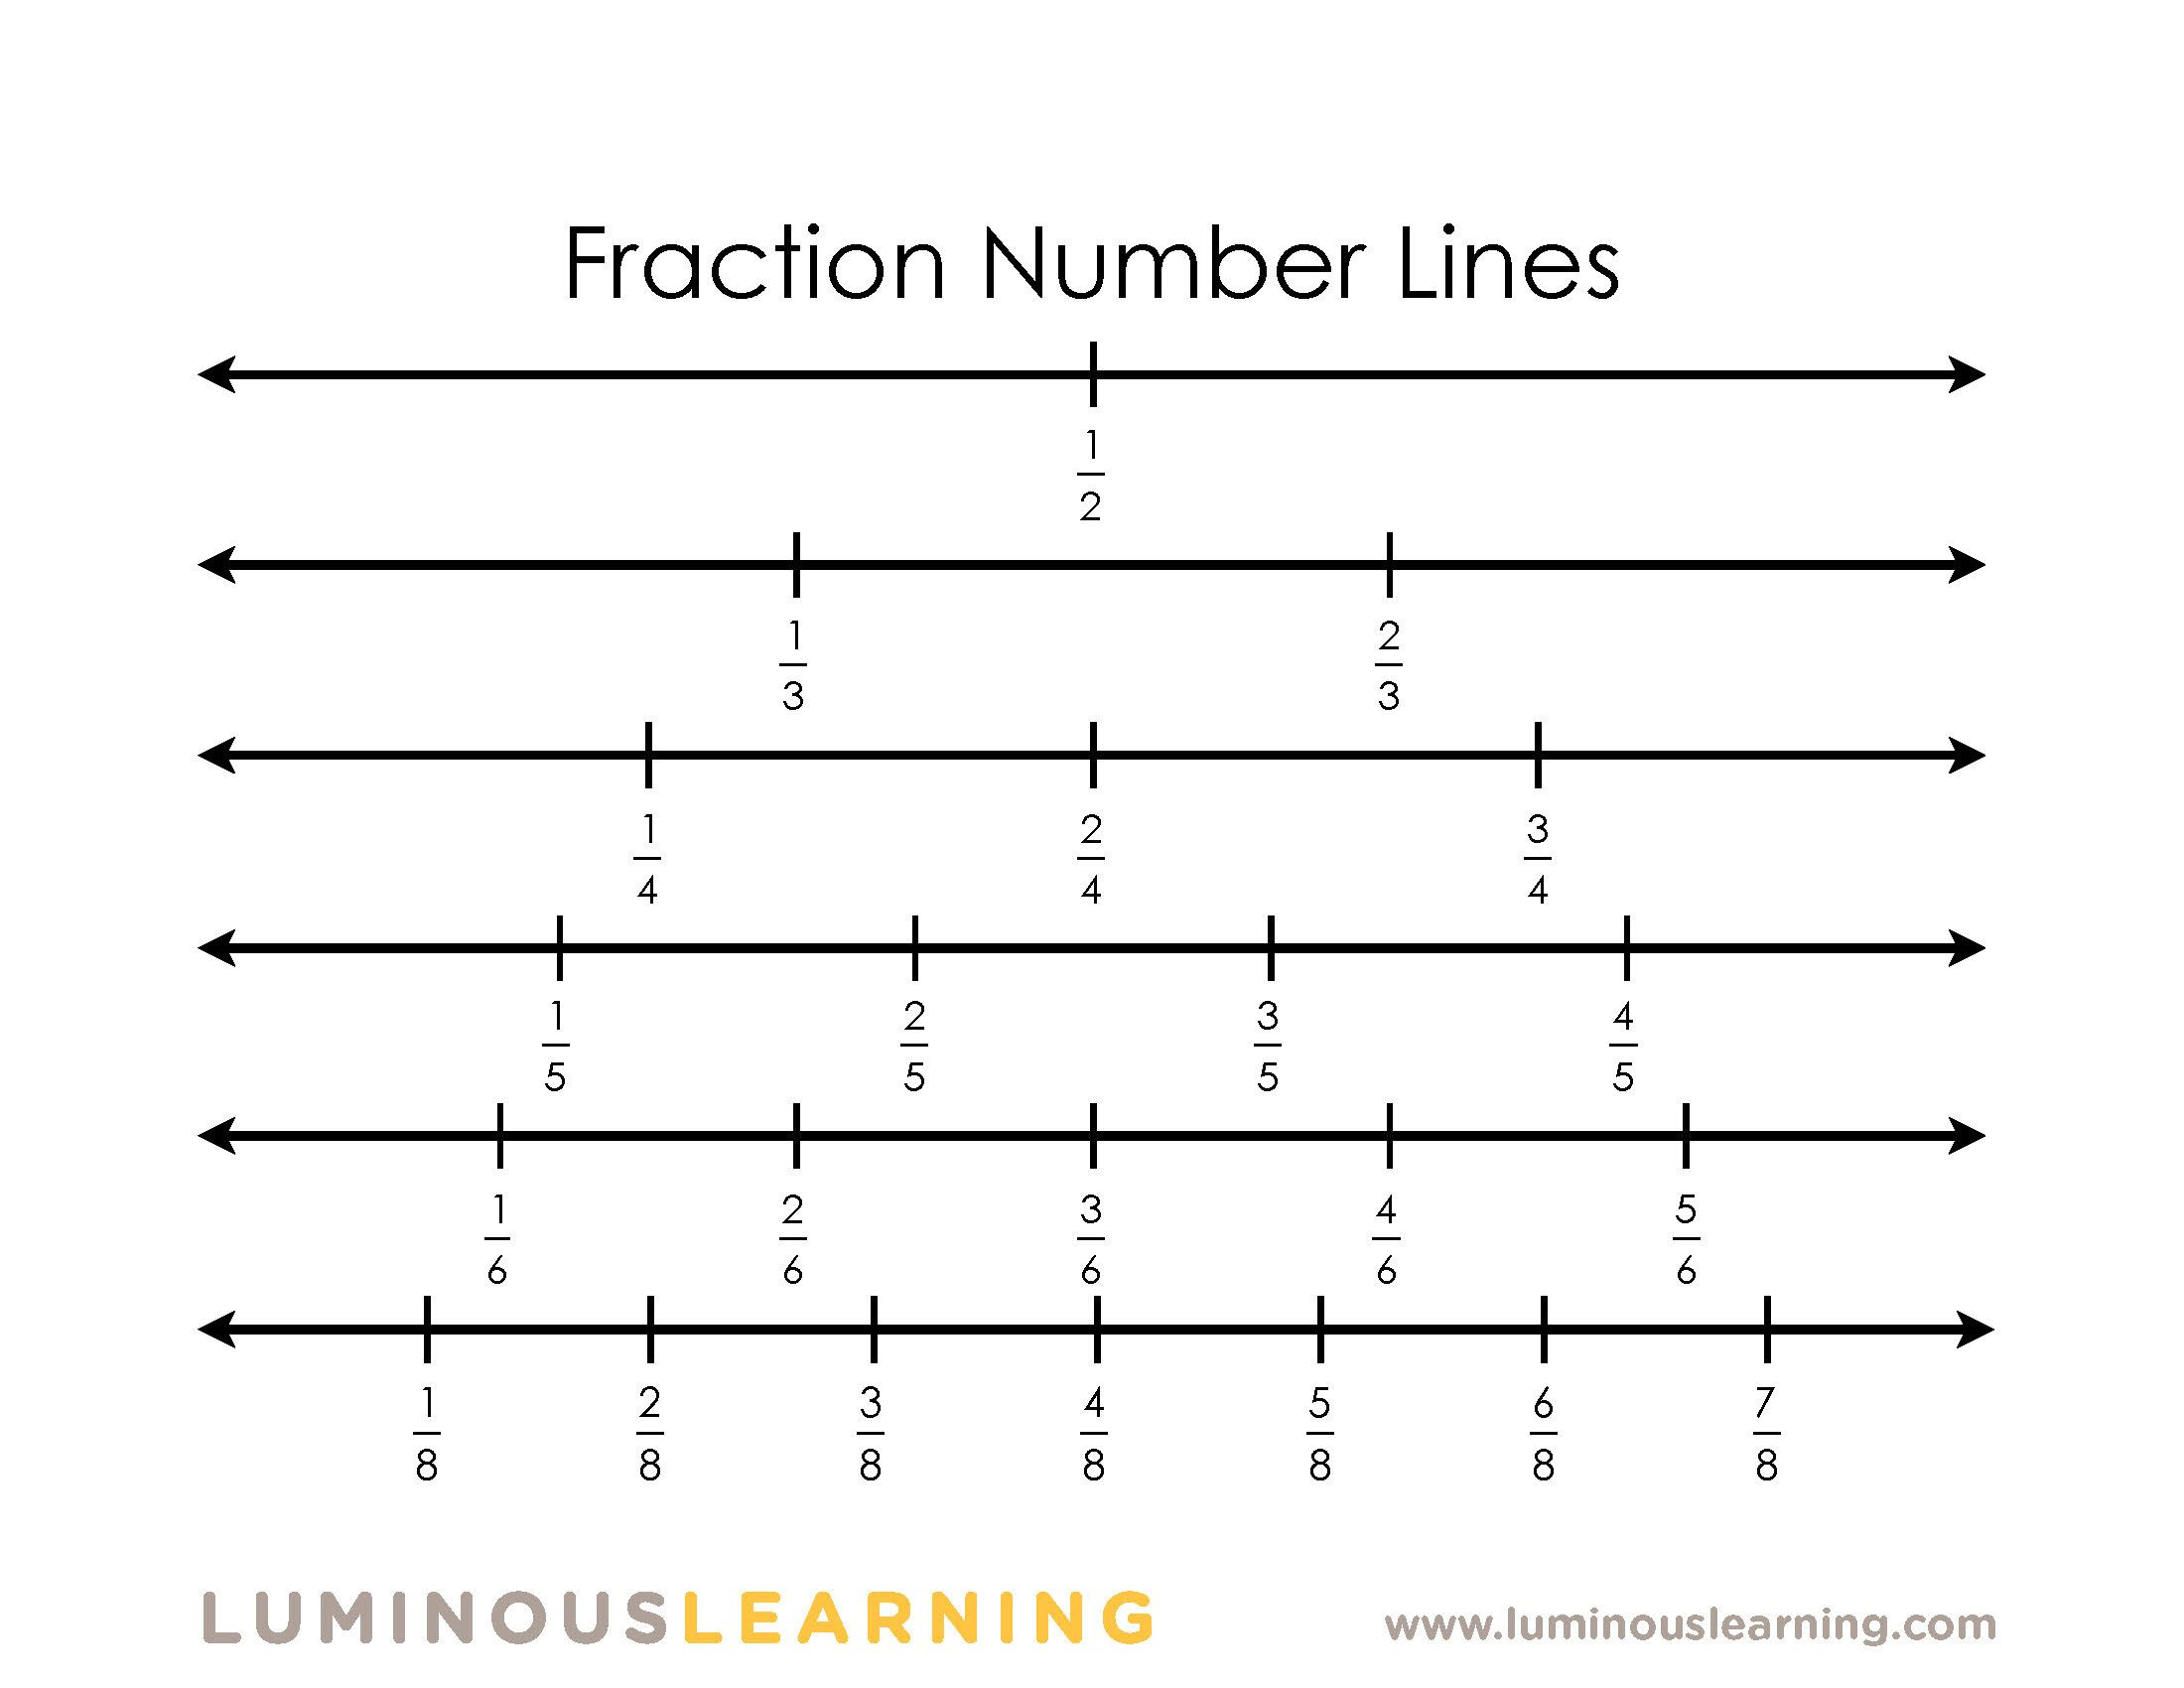 worksheet Fraction Number Line learn tips to help students visualize fractions on a number line and receive free copy